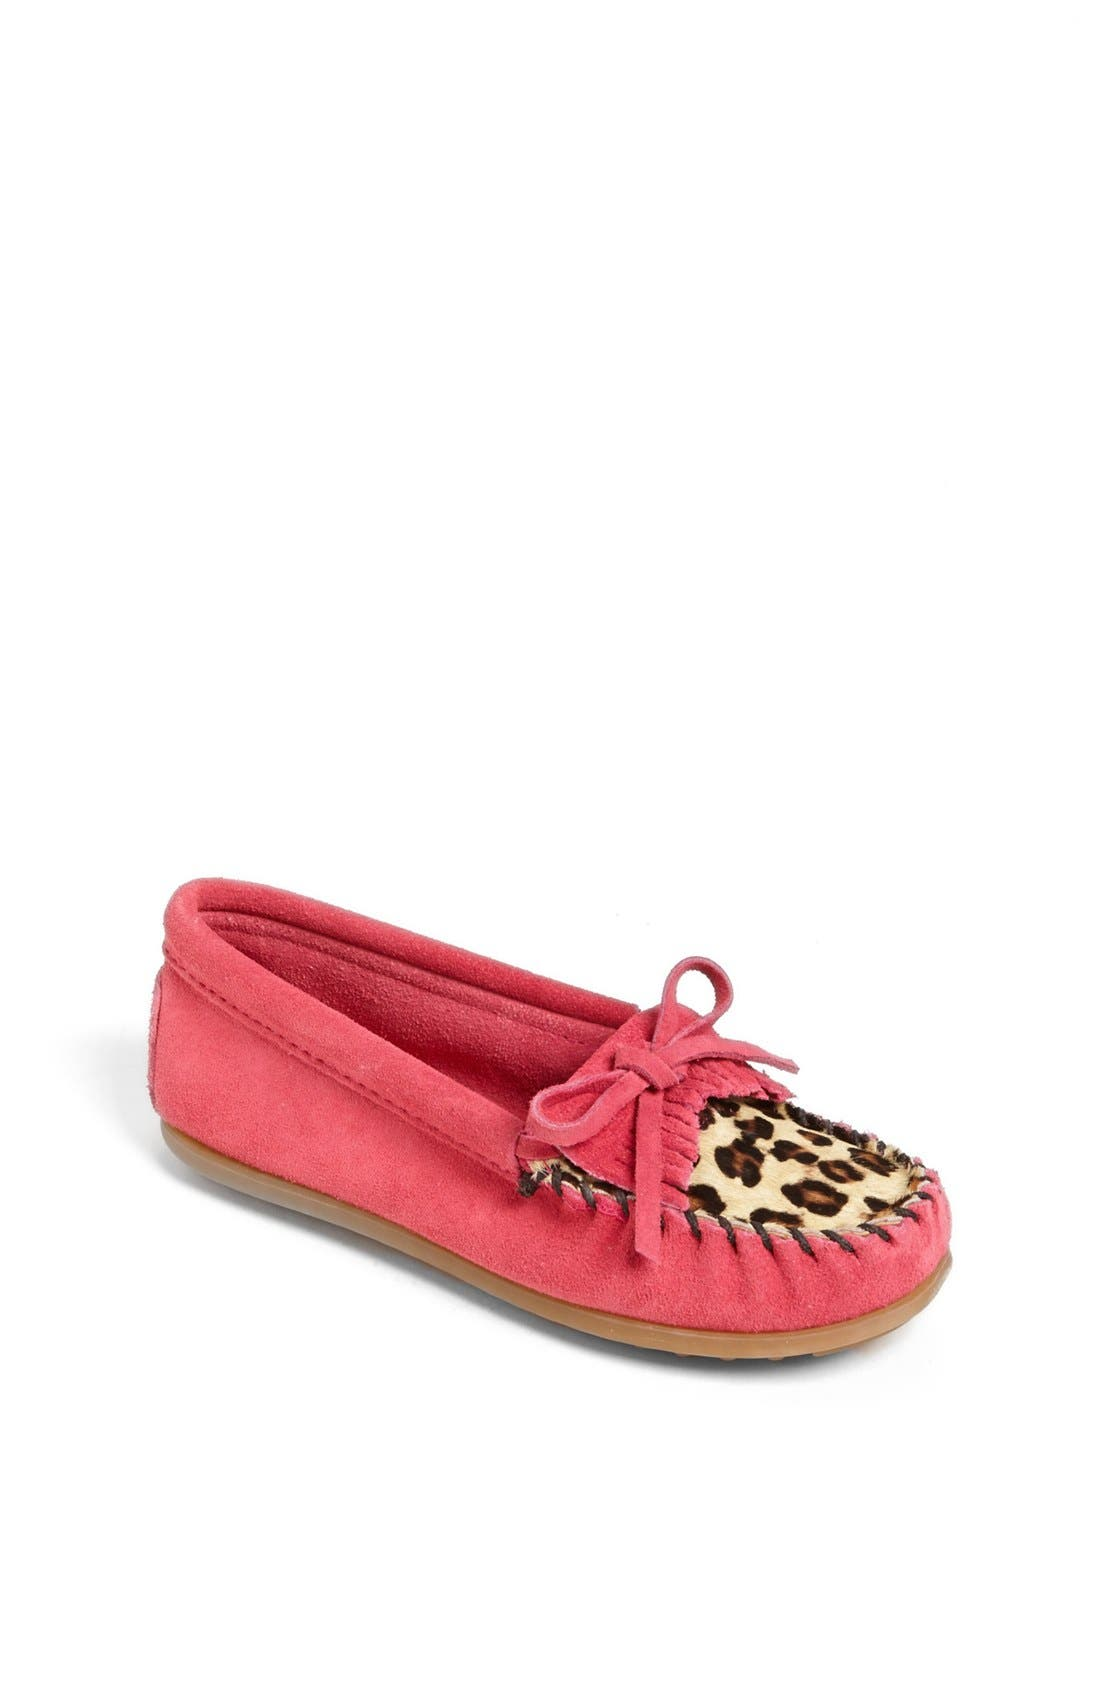 Alternate Image 1 Selected - Minnetonka 'Kilty - Leopard' Moccasin (Walker, Toddler, Little Kid & Big Kid)